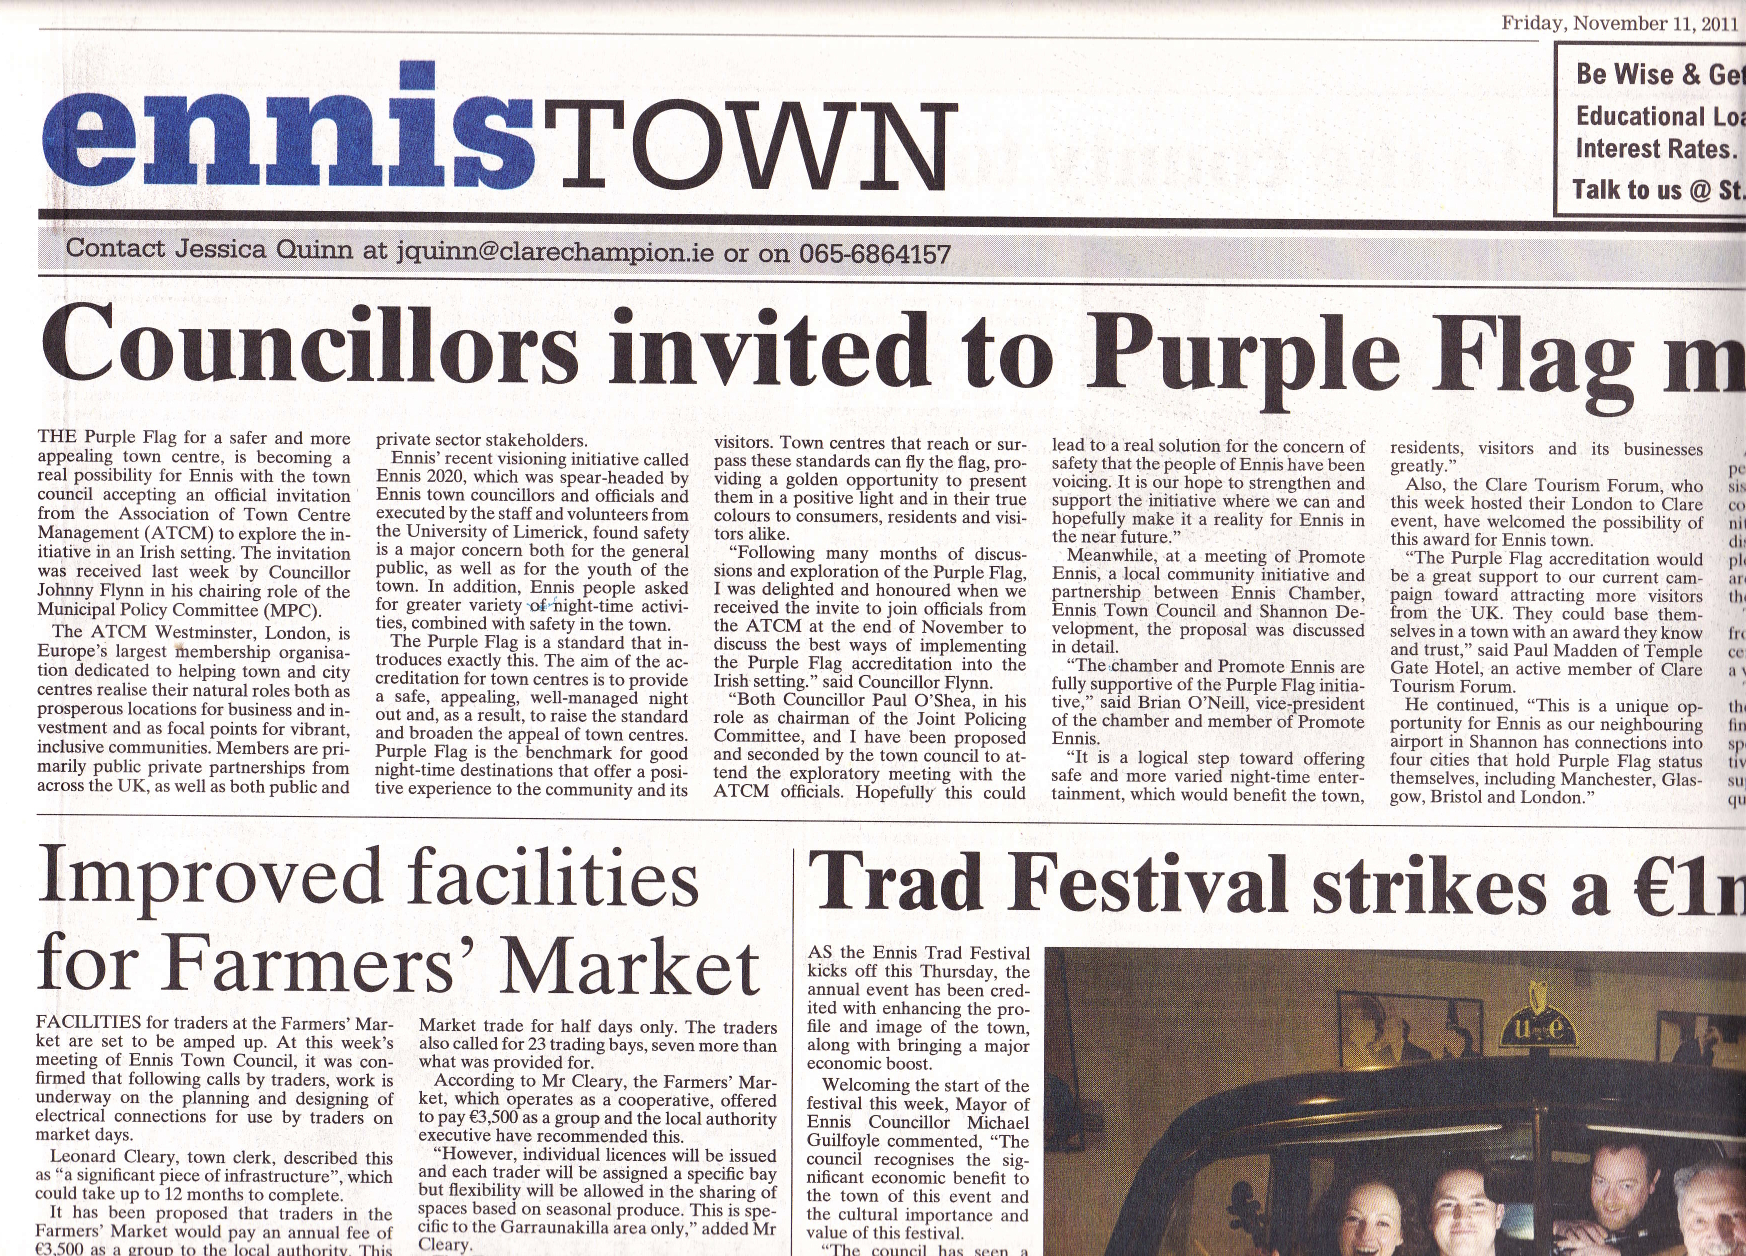 PurpleFlag_Councillors invited, introduction.jpeg